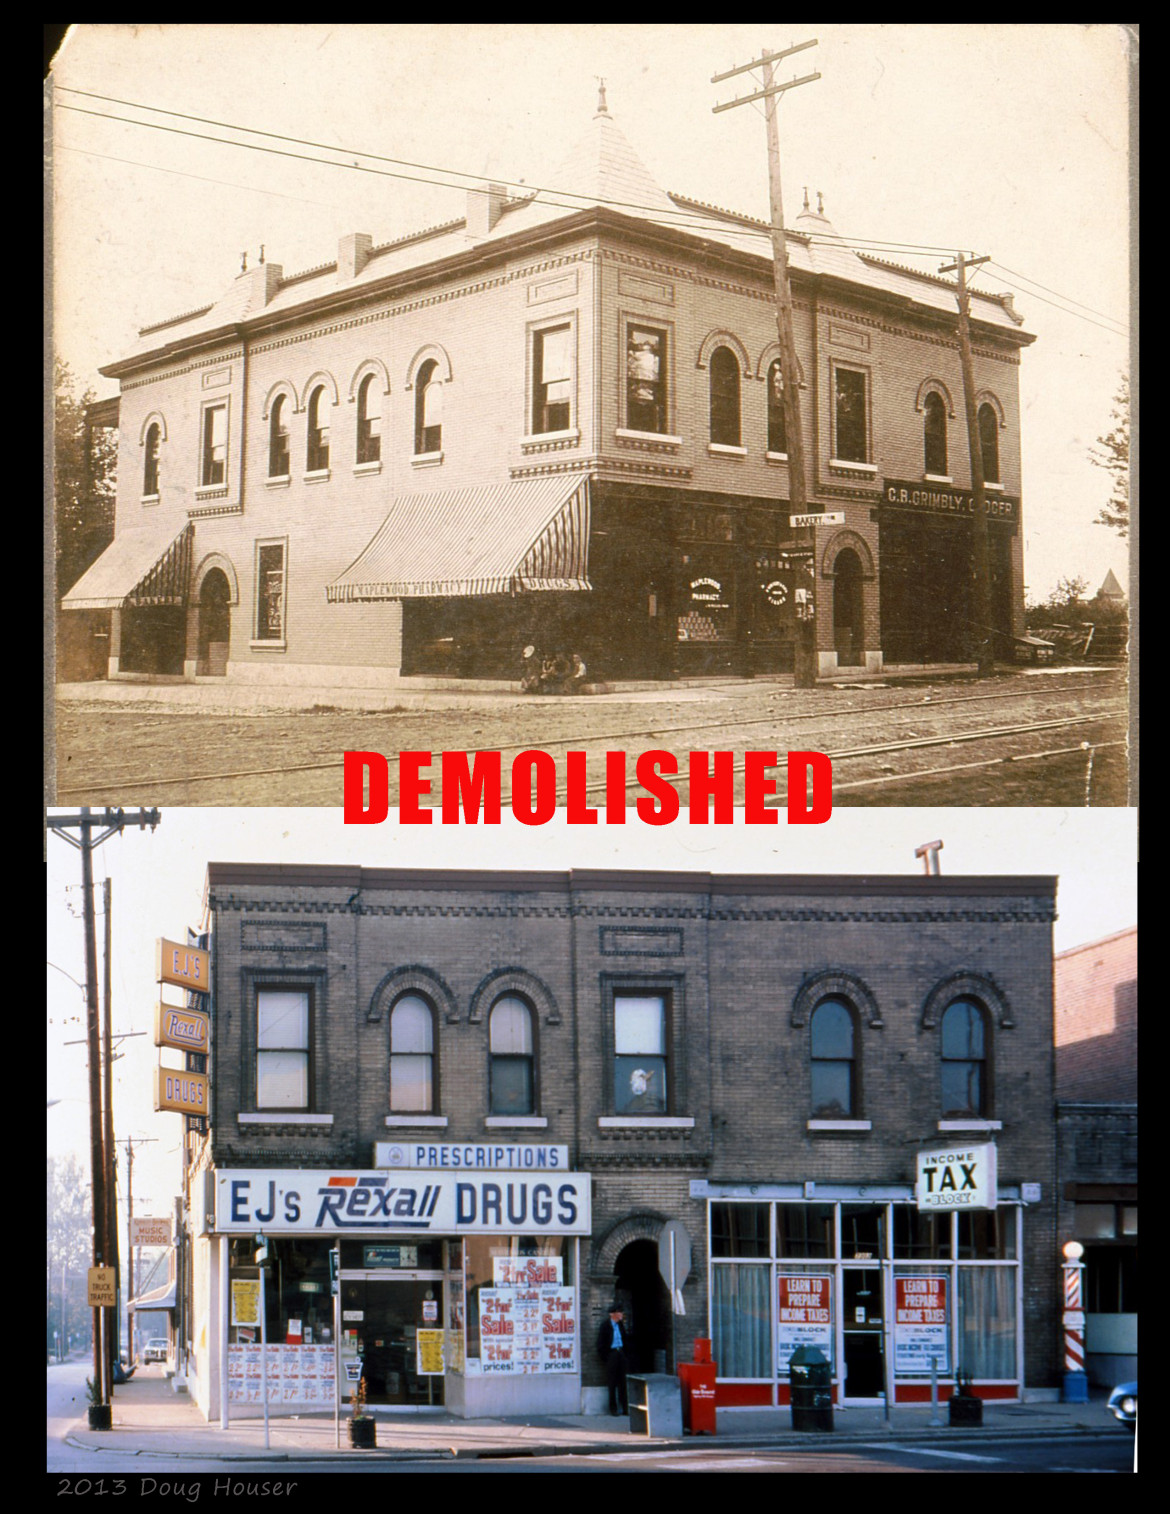 This magnificent brick building was located at the SW corner of Mancheater and Marshall until it was demolished in the early 70's.